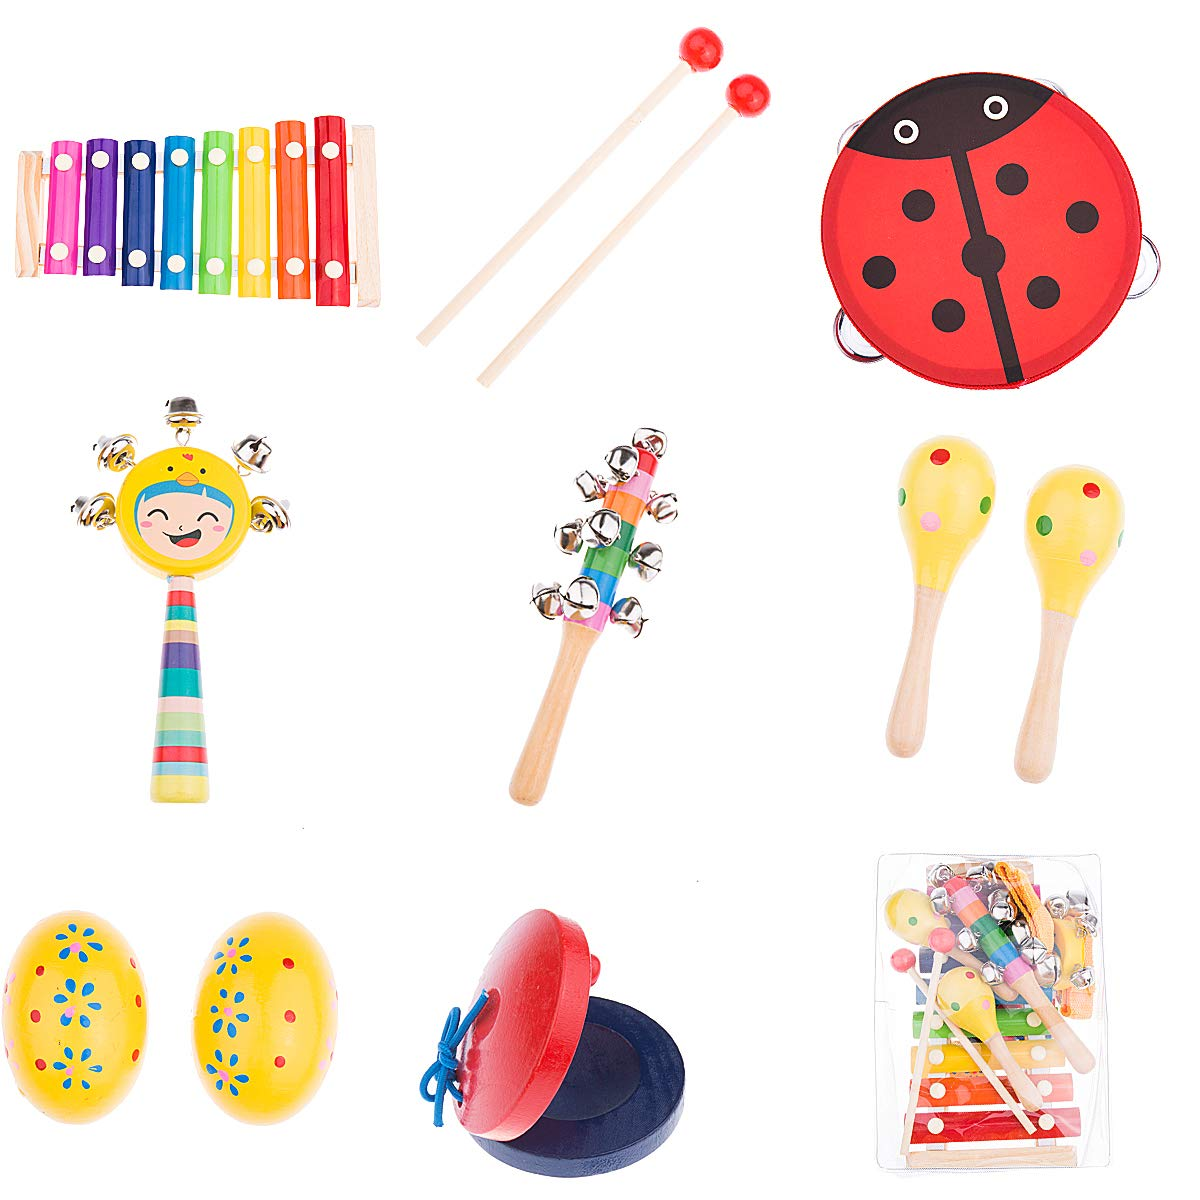 OAMCEG Toddler Musical Instruments 9 Types 12Pcs Wooden Percussion Instruments Toy Set for Kids Preschool Educational with Free Carrying Bag